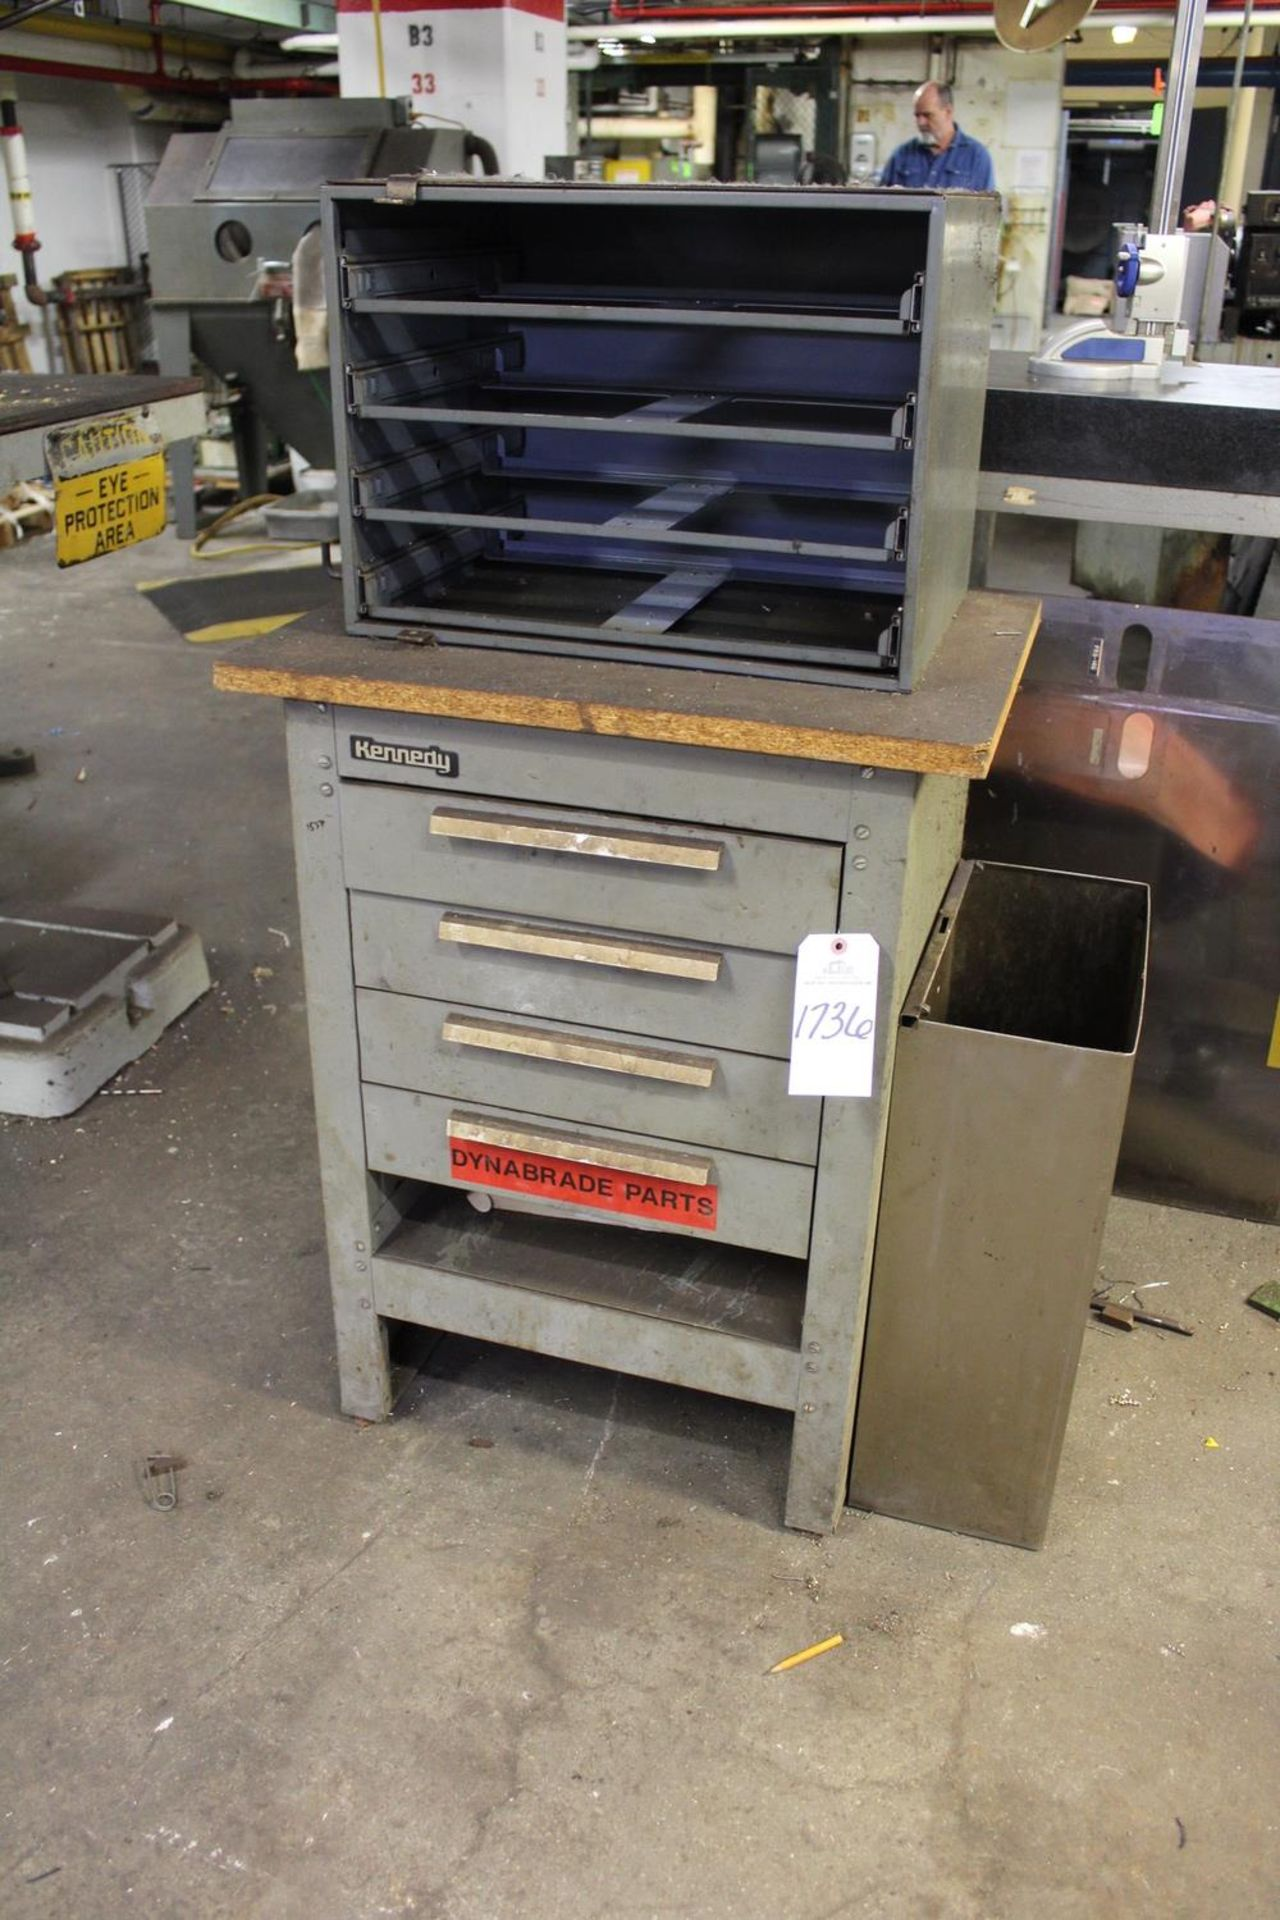 Lot 1736 - Storage Cabinet W/Contents | Rig Fee: Hand carry contents only or Contact Rigger